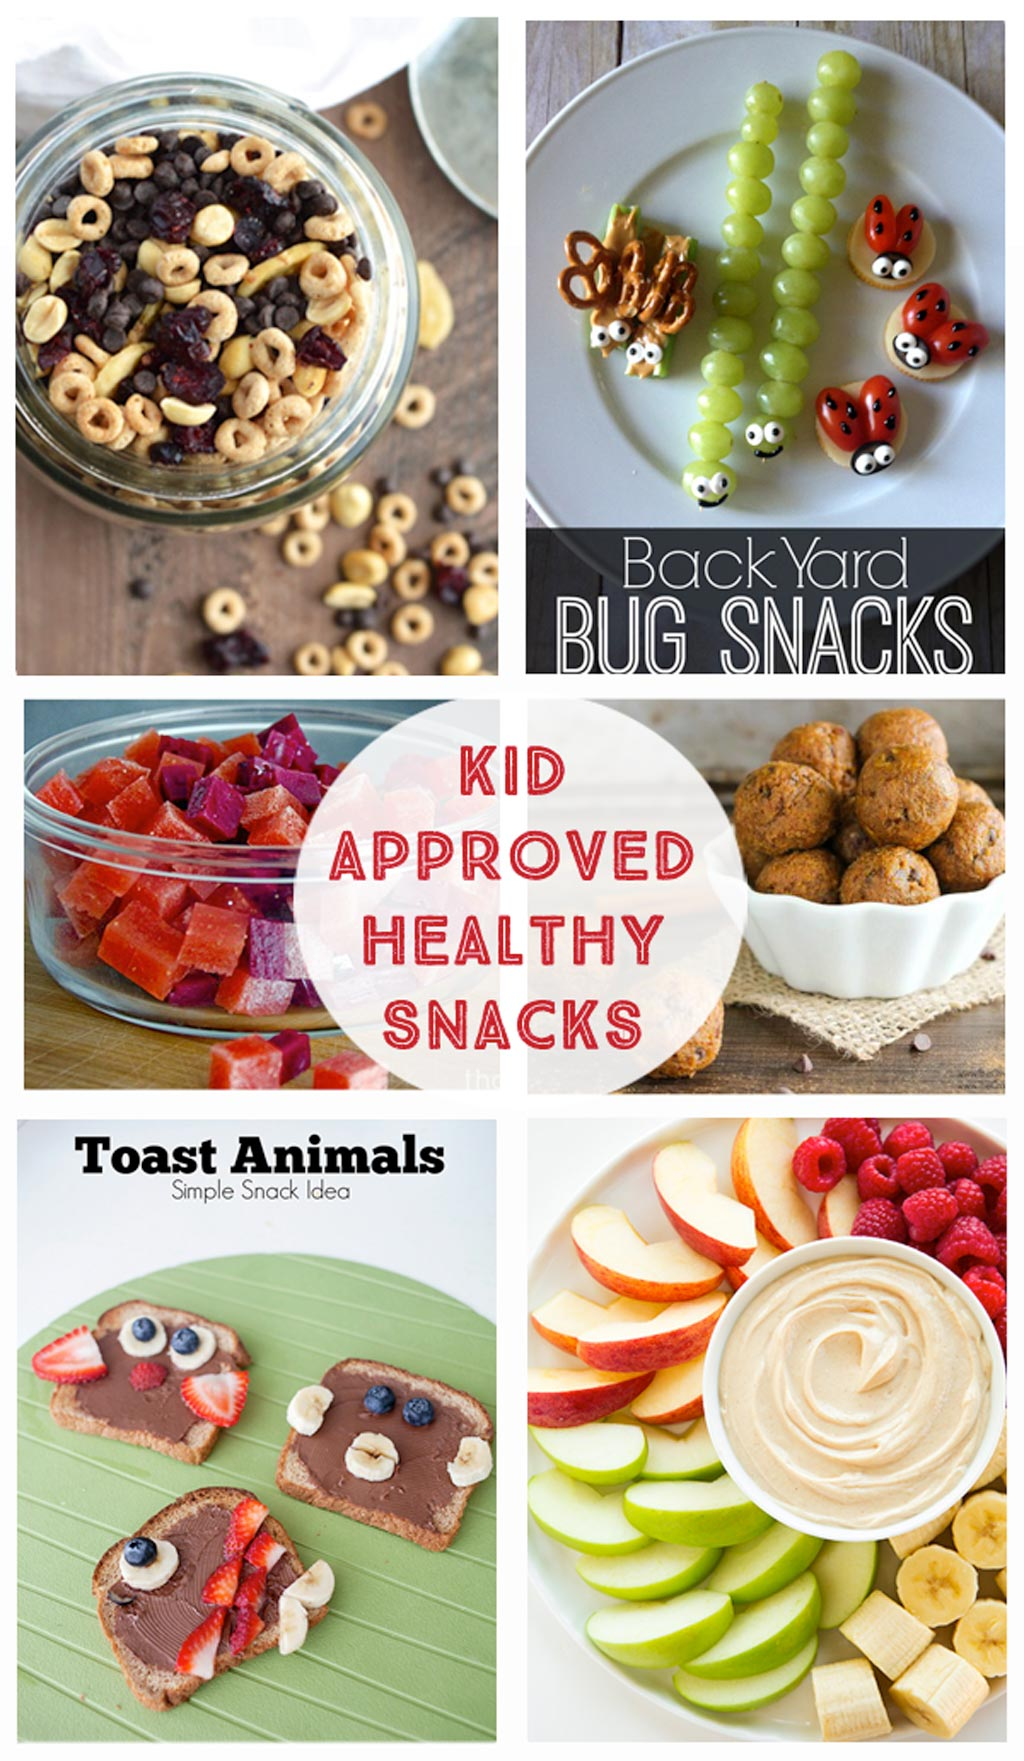 Kid Approved Healthy Snacks